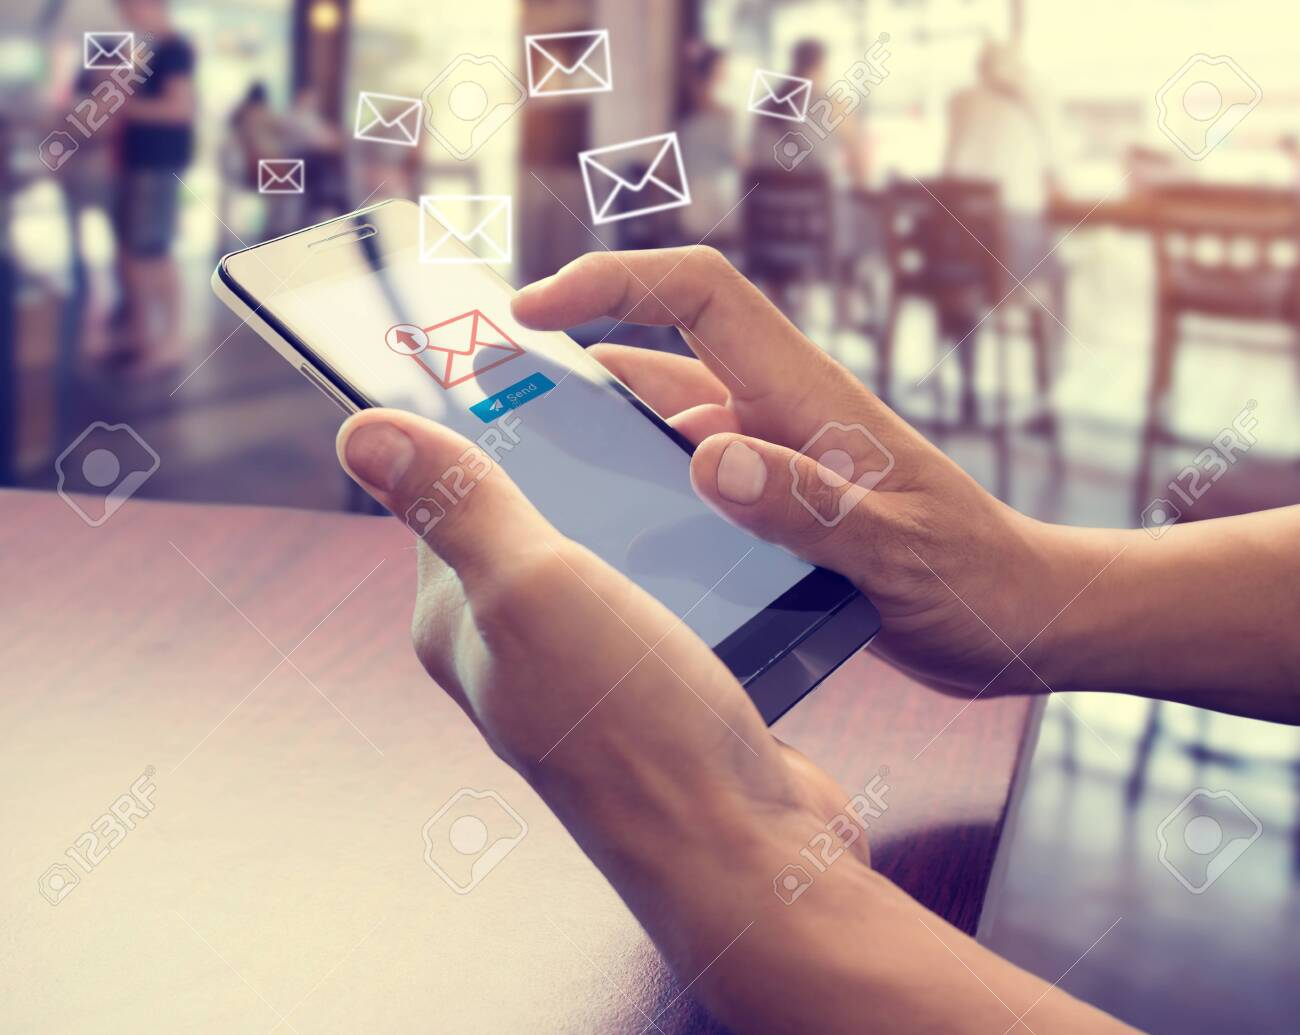 Hand of male using mobile phone to sending E-mail message with email symbol and envelope icon. Email marketing concept - 127898743